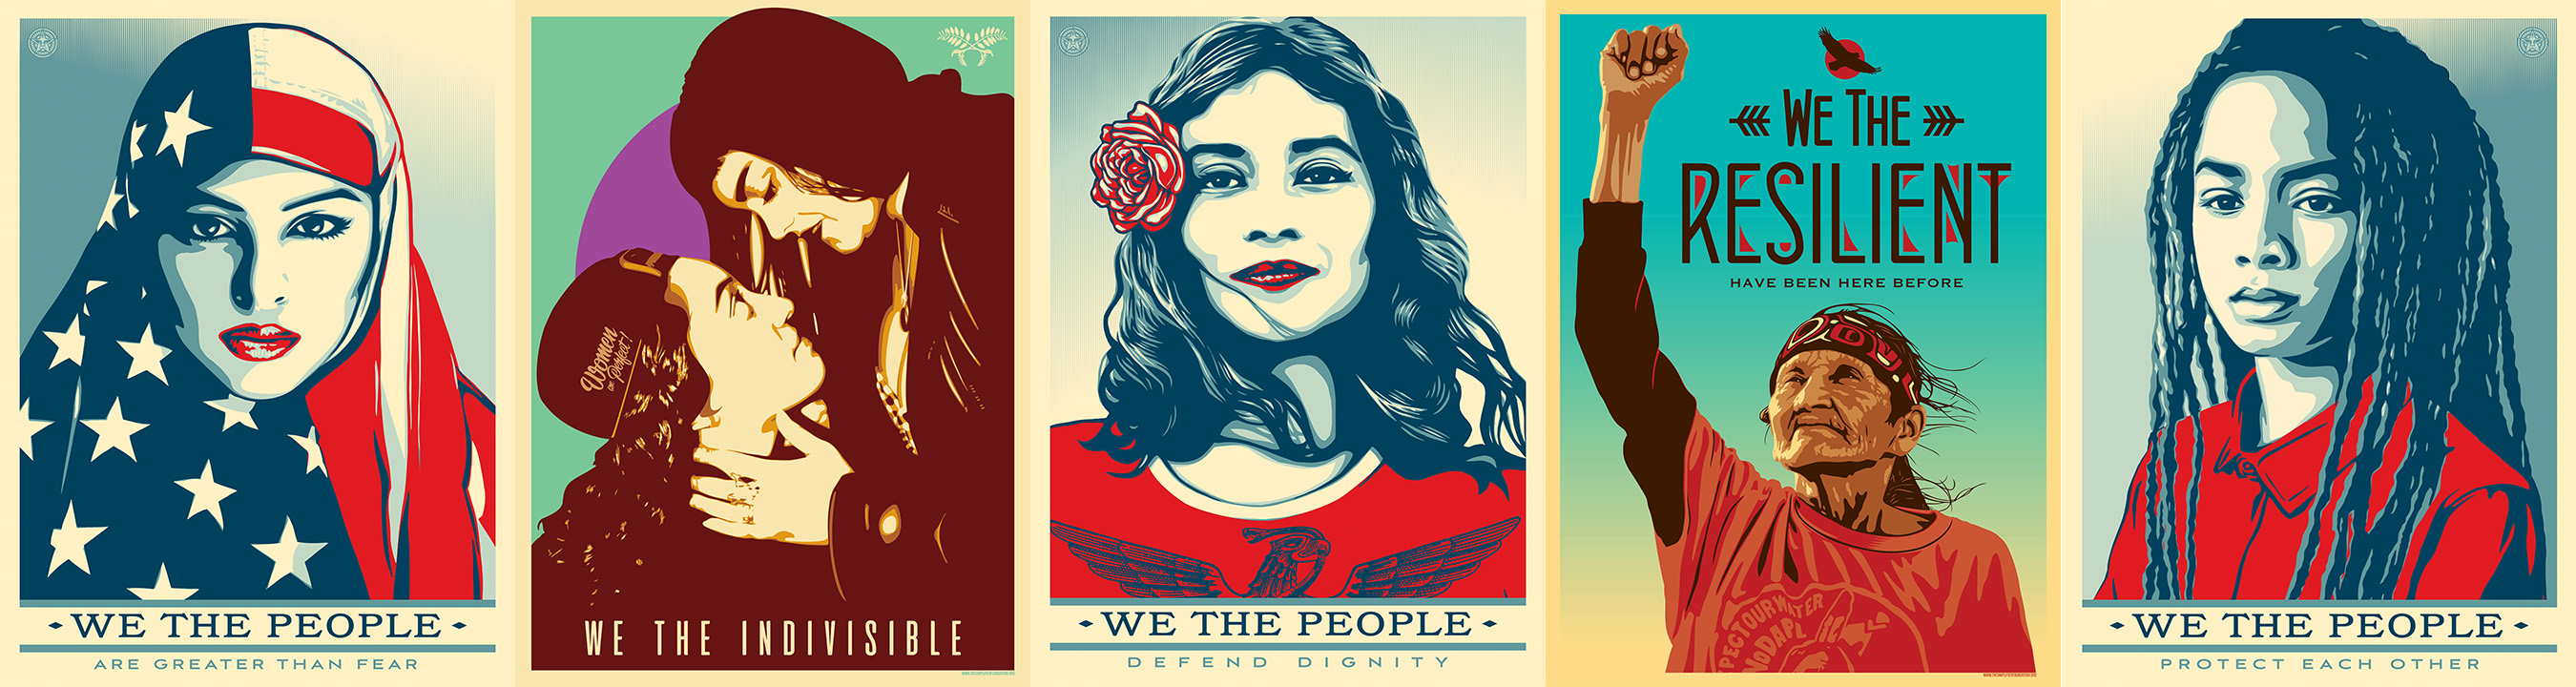 we the people public art series plans to infiltrate the inauguration